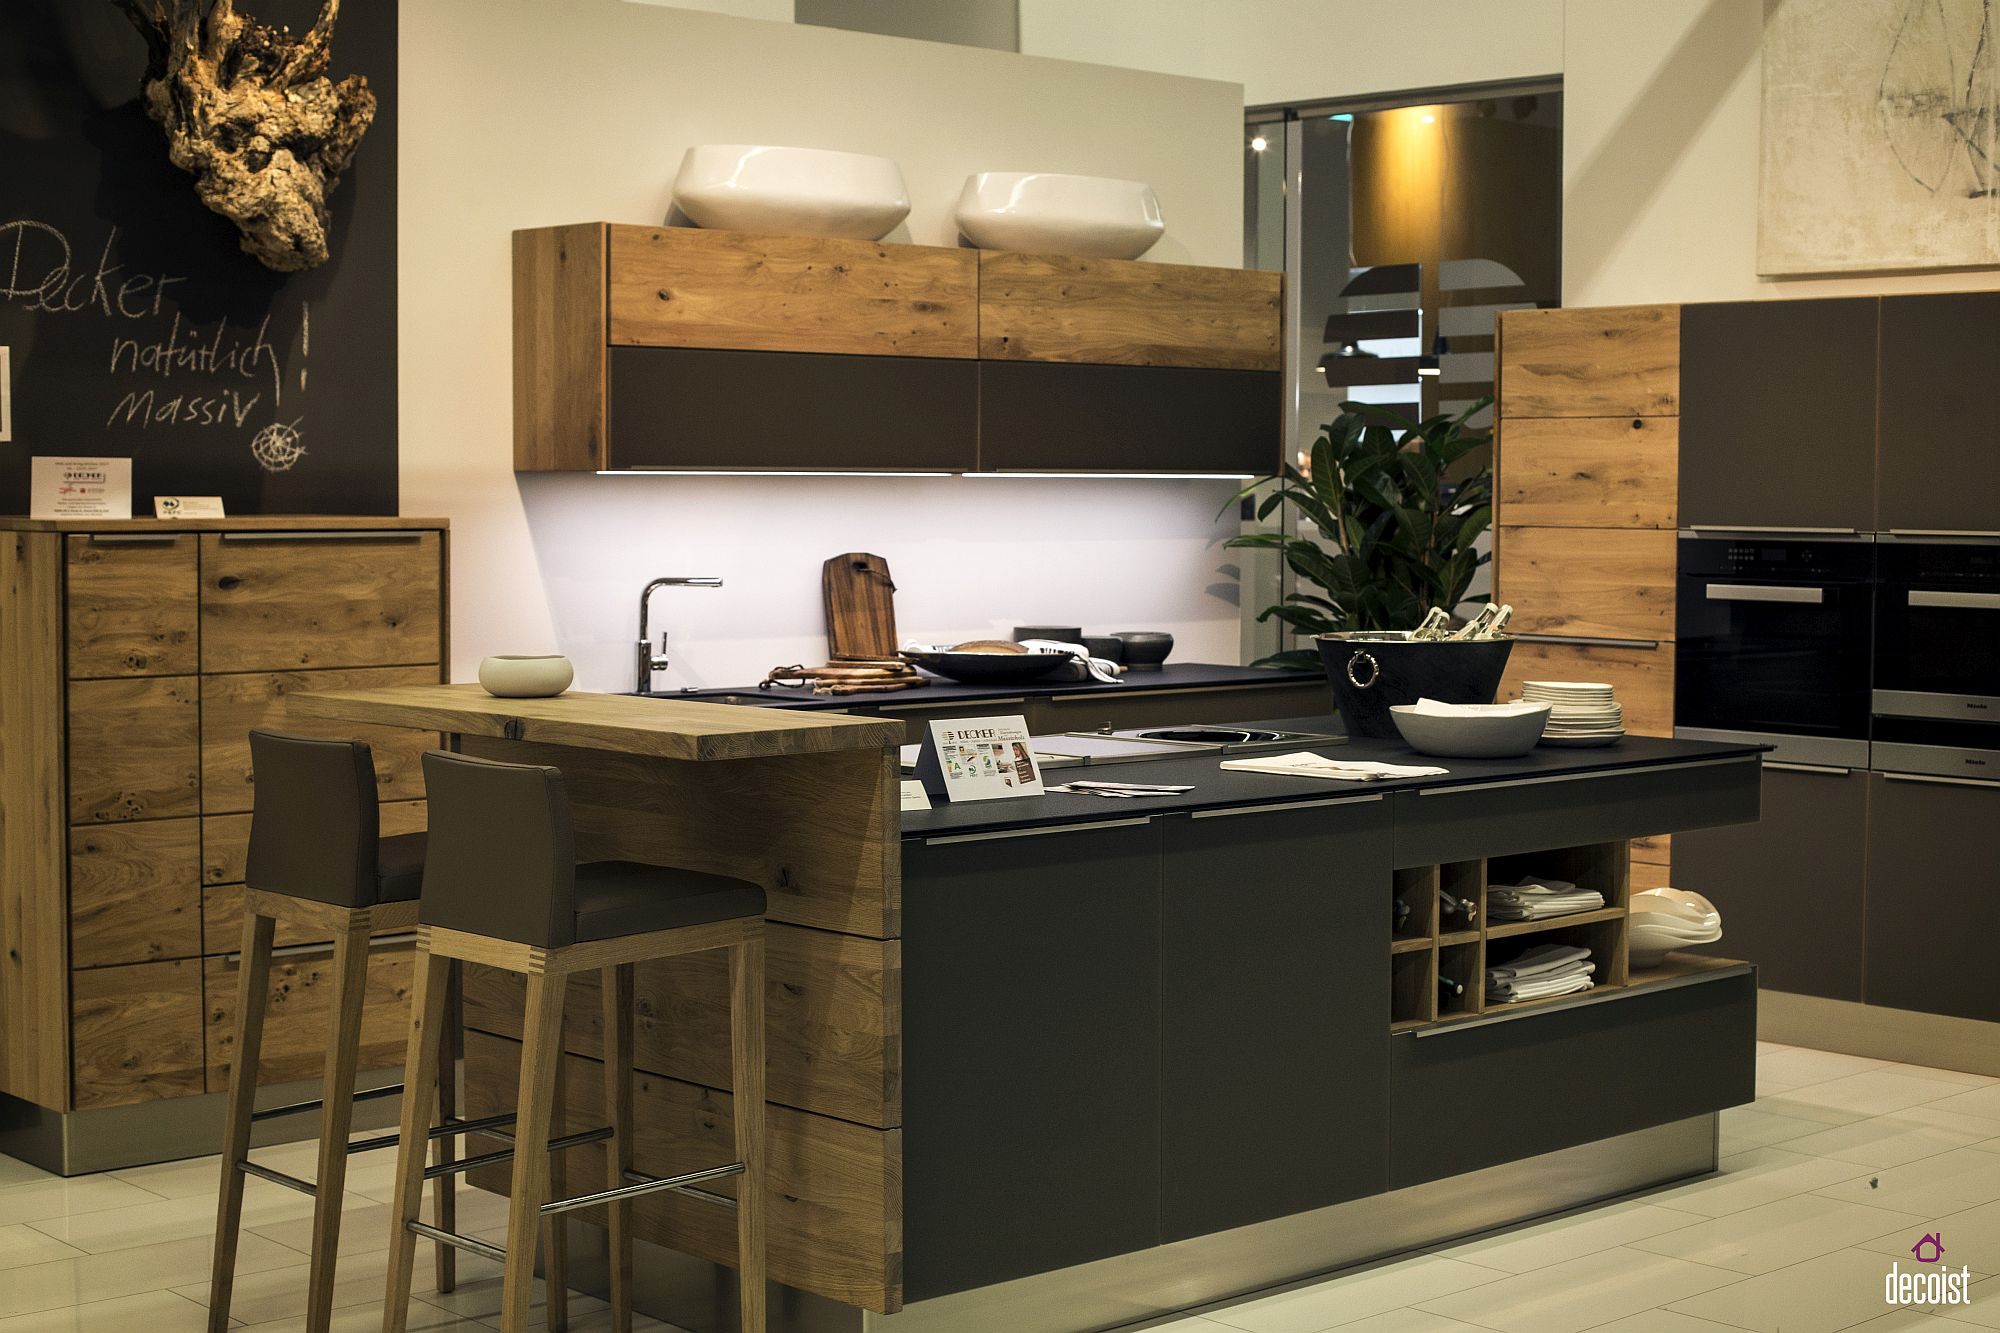 Wooden-breakfast-bar-for-the-kitchen-island-in-gray